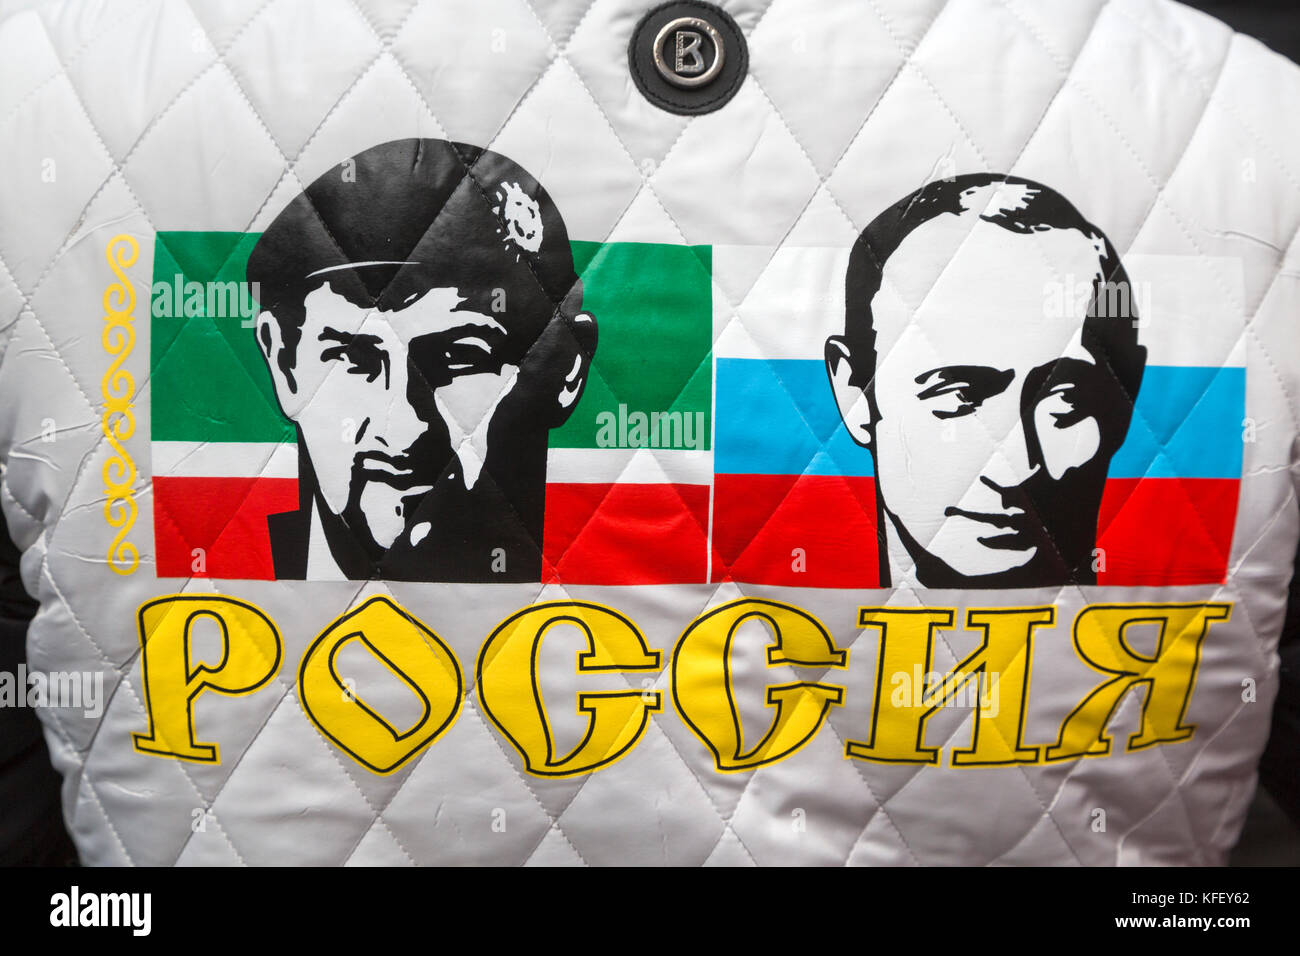 Portraits of Ramzan Kadyrov and Vladimir Putin on the back of the activist of the movement 'Antimaydan' - Stock Image